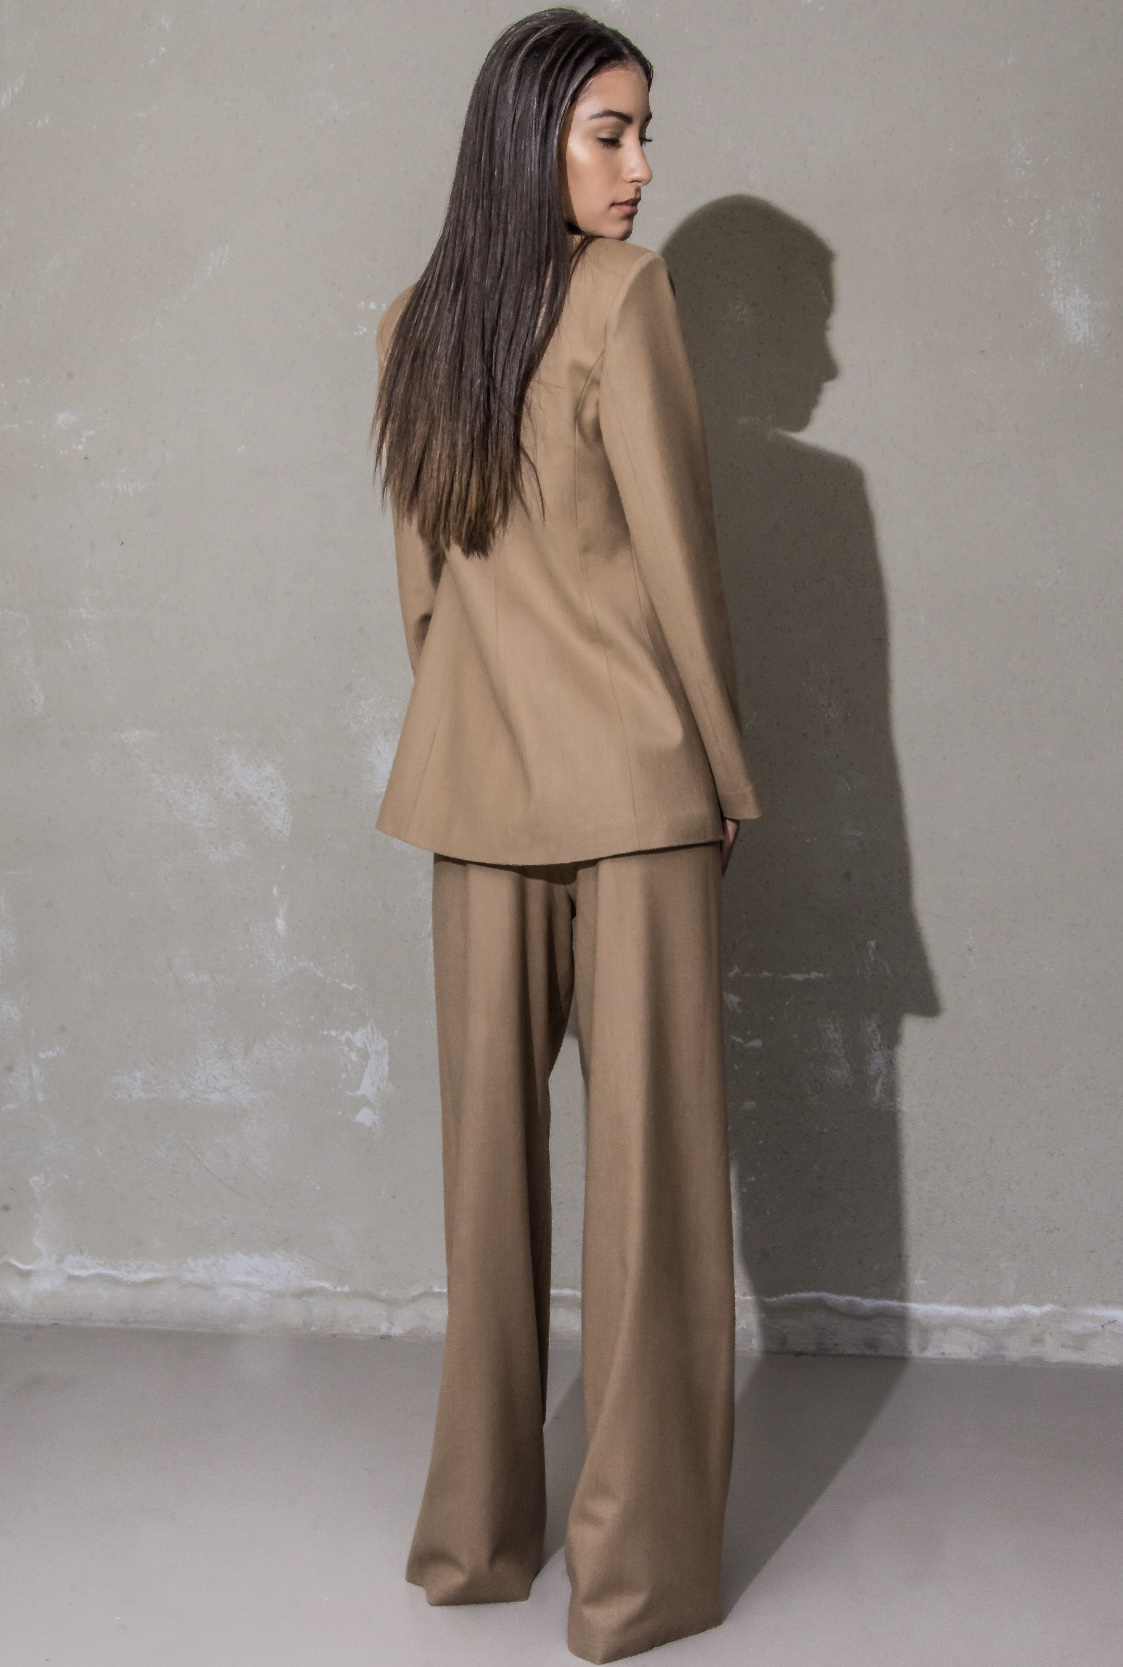 gaor-tailoring-french-designers-livinmarseille